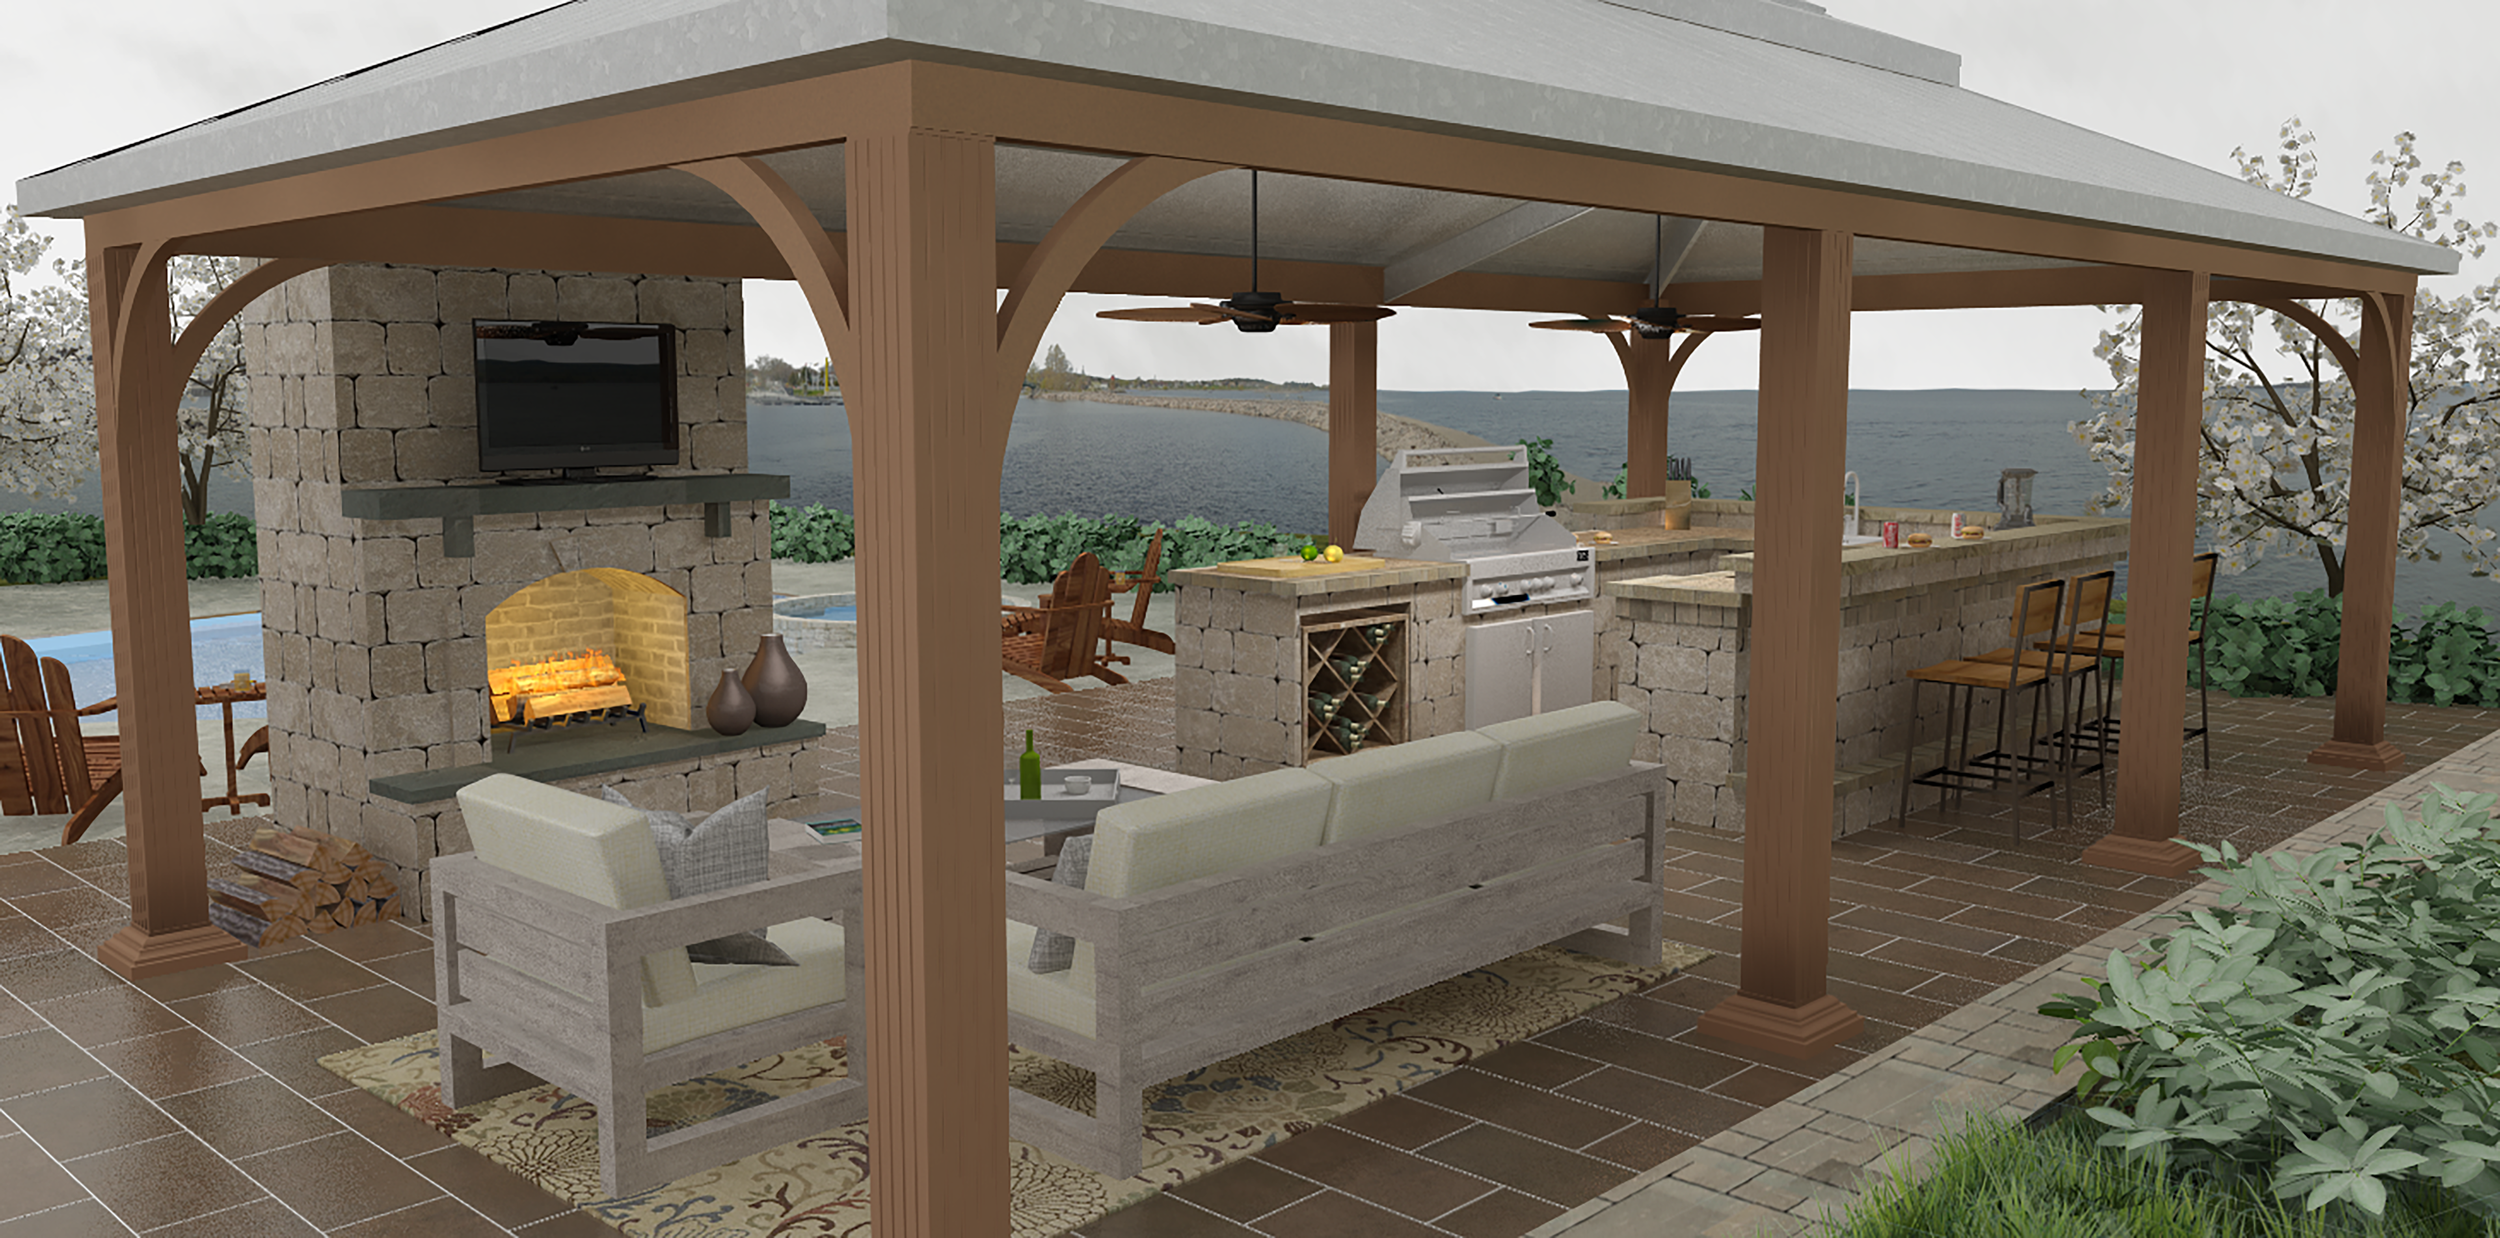 16x32-outdoor-kitchen-2017-03-01-16525700000.png